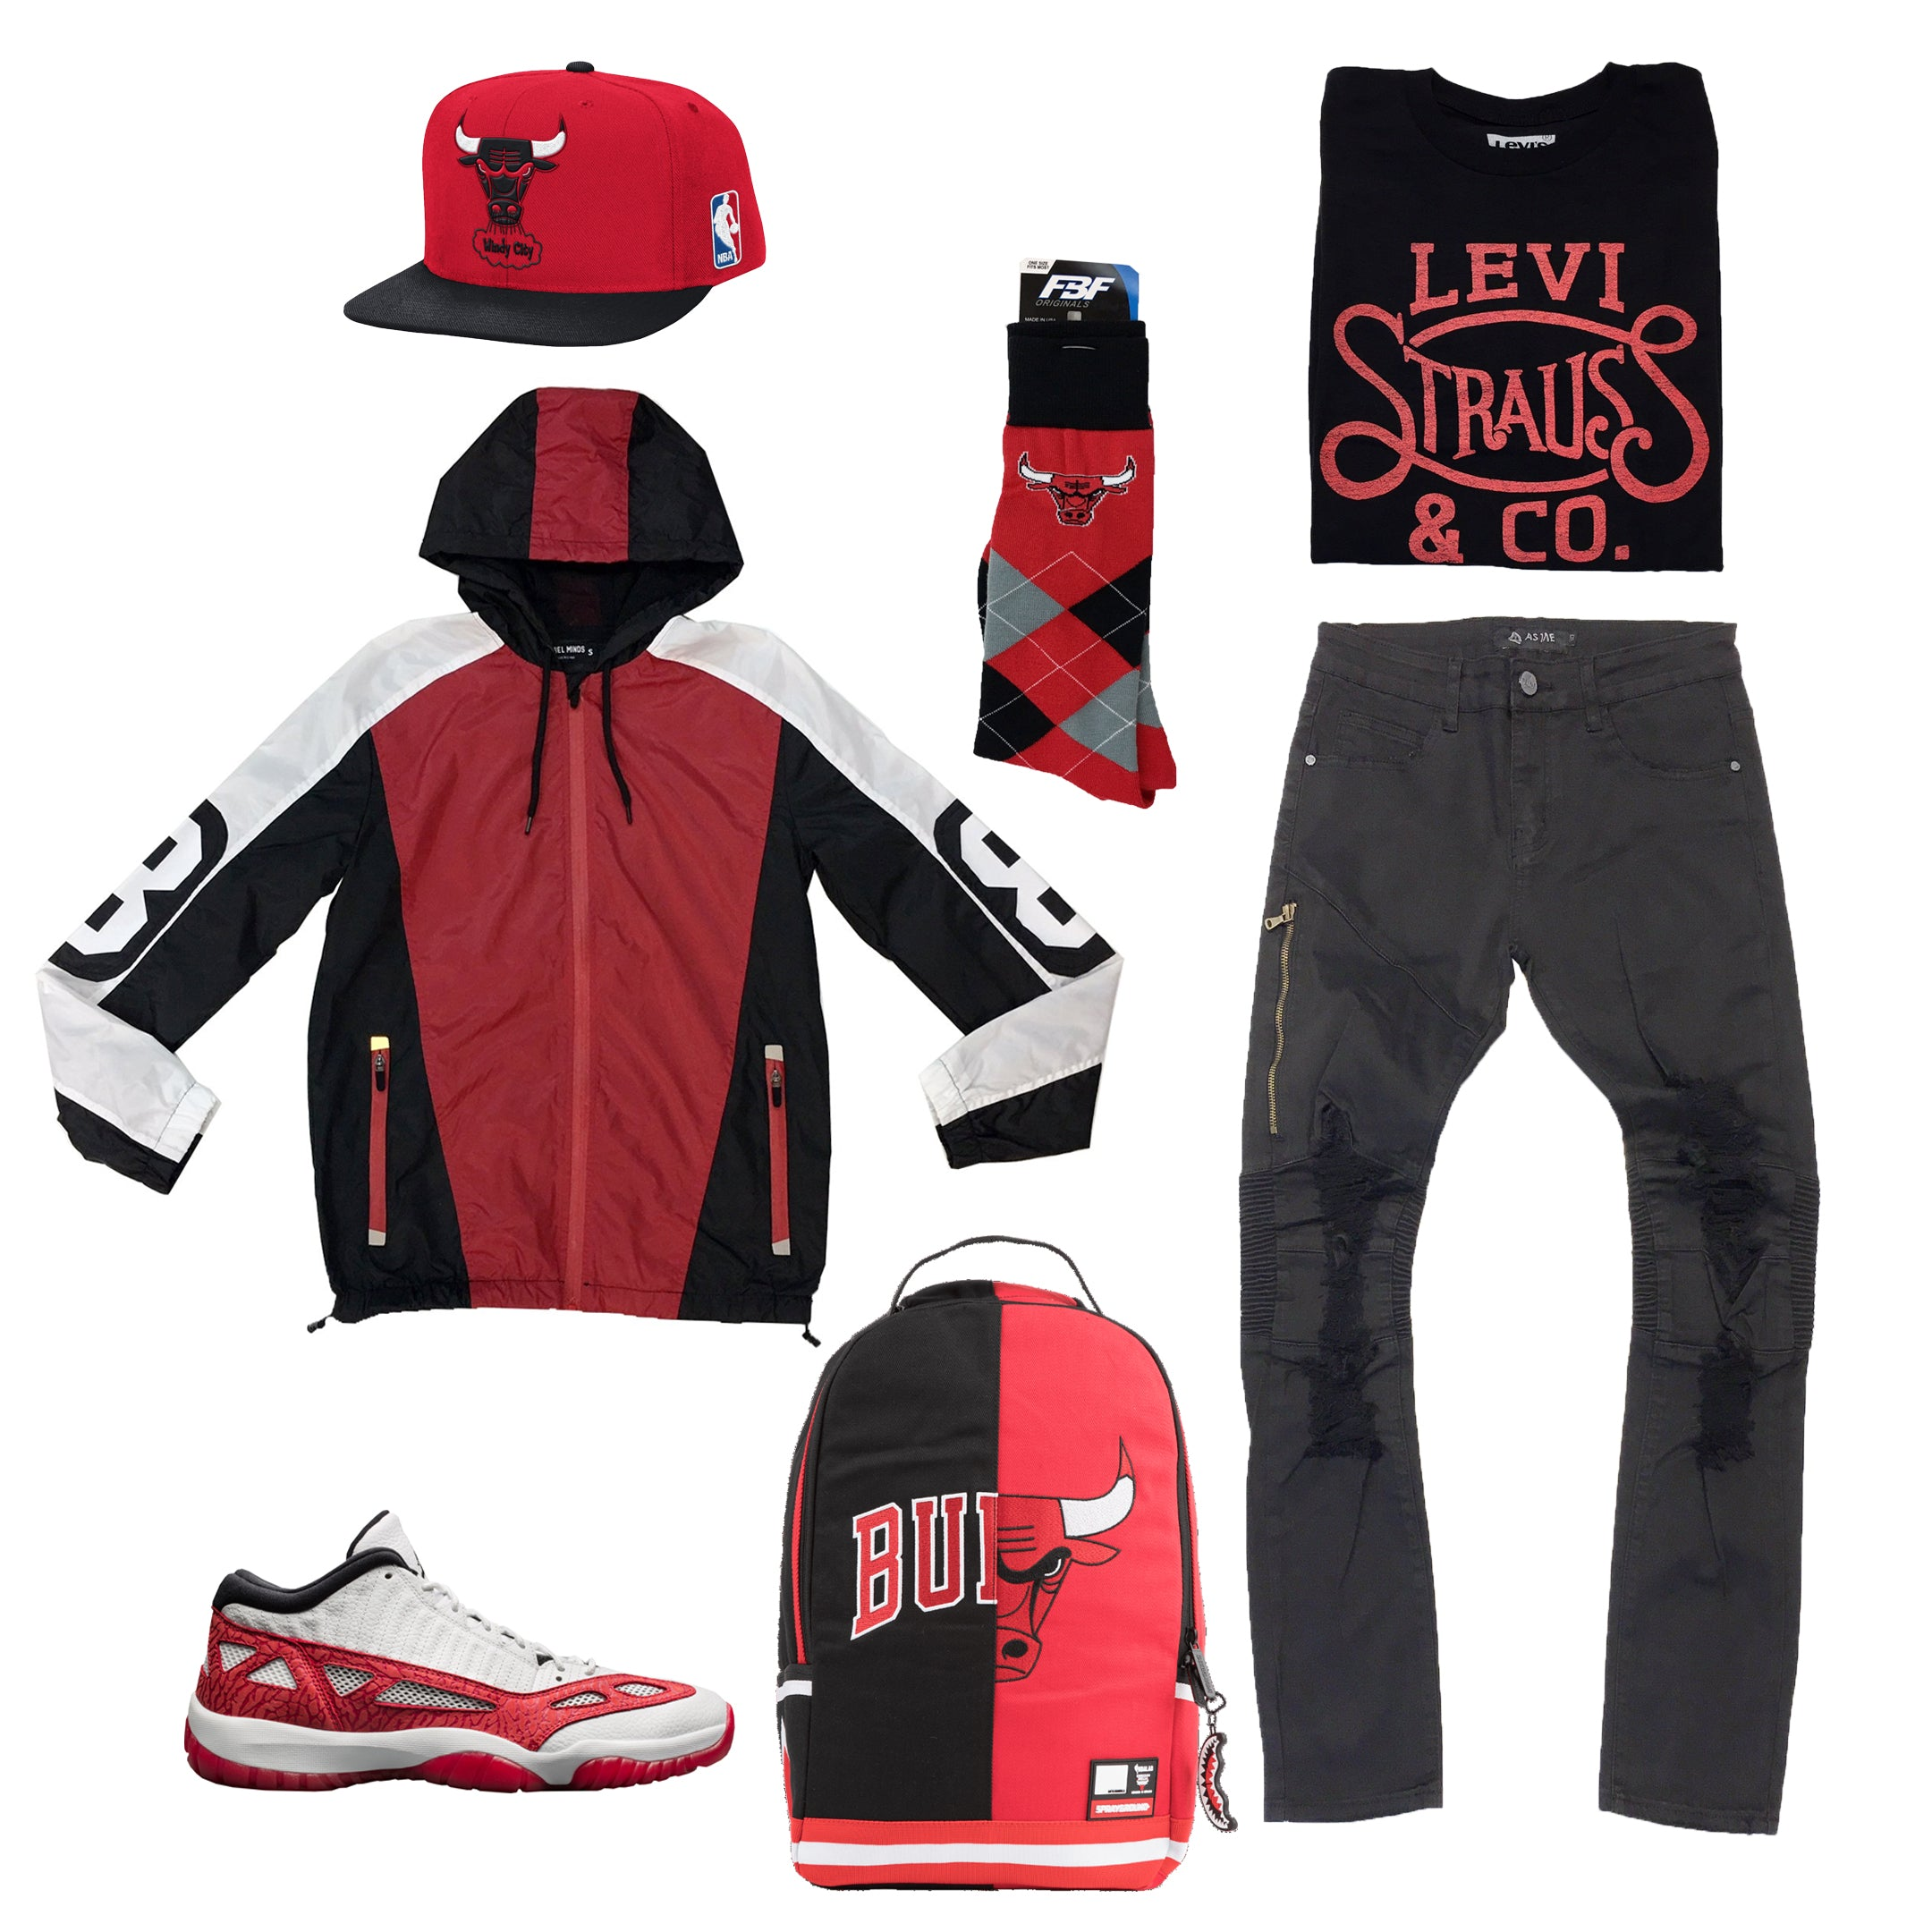 impactful red retro 11 outfits 2